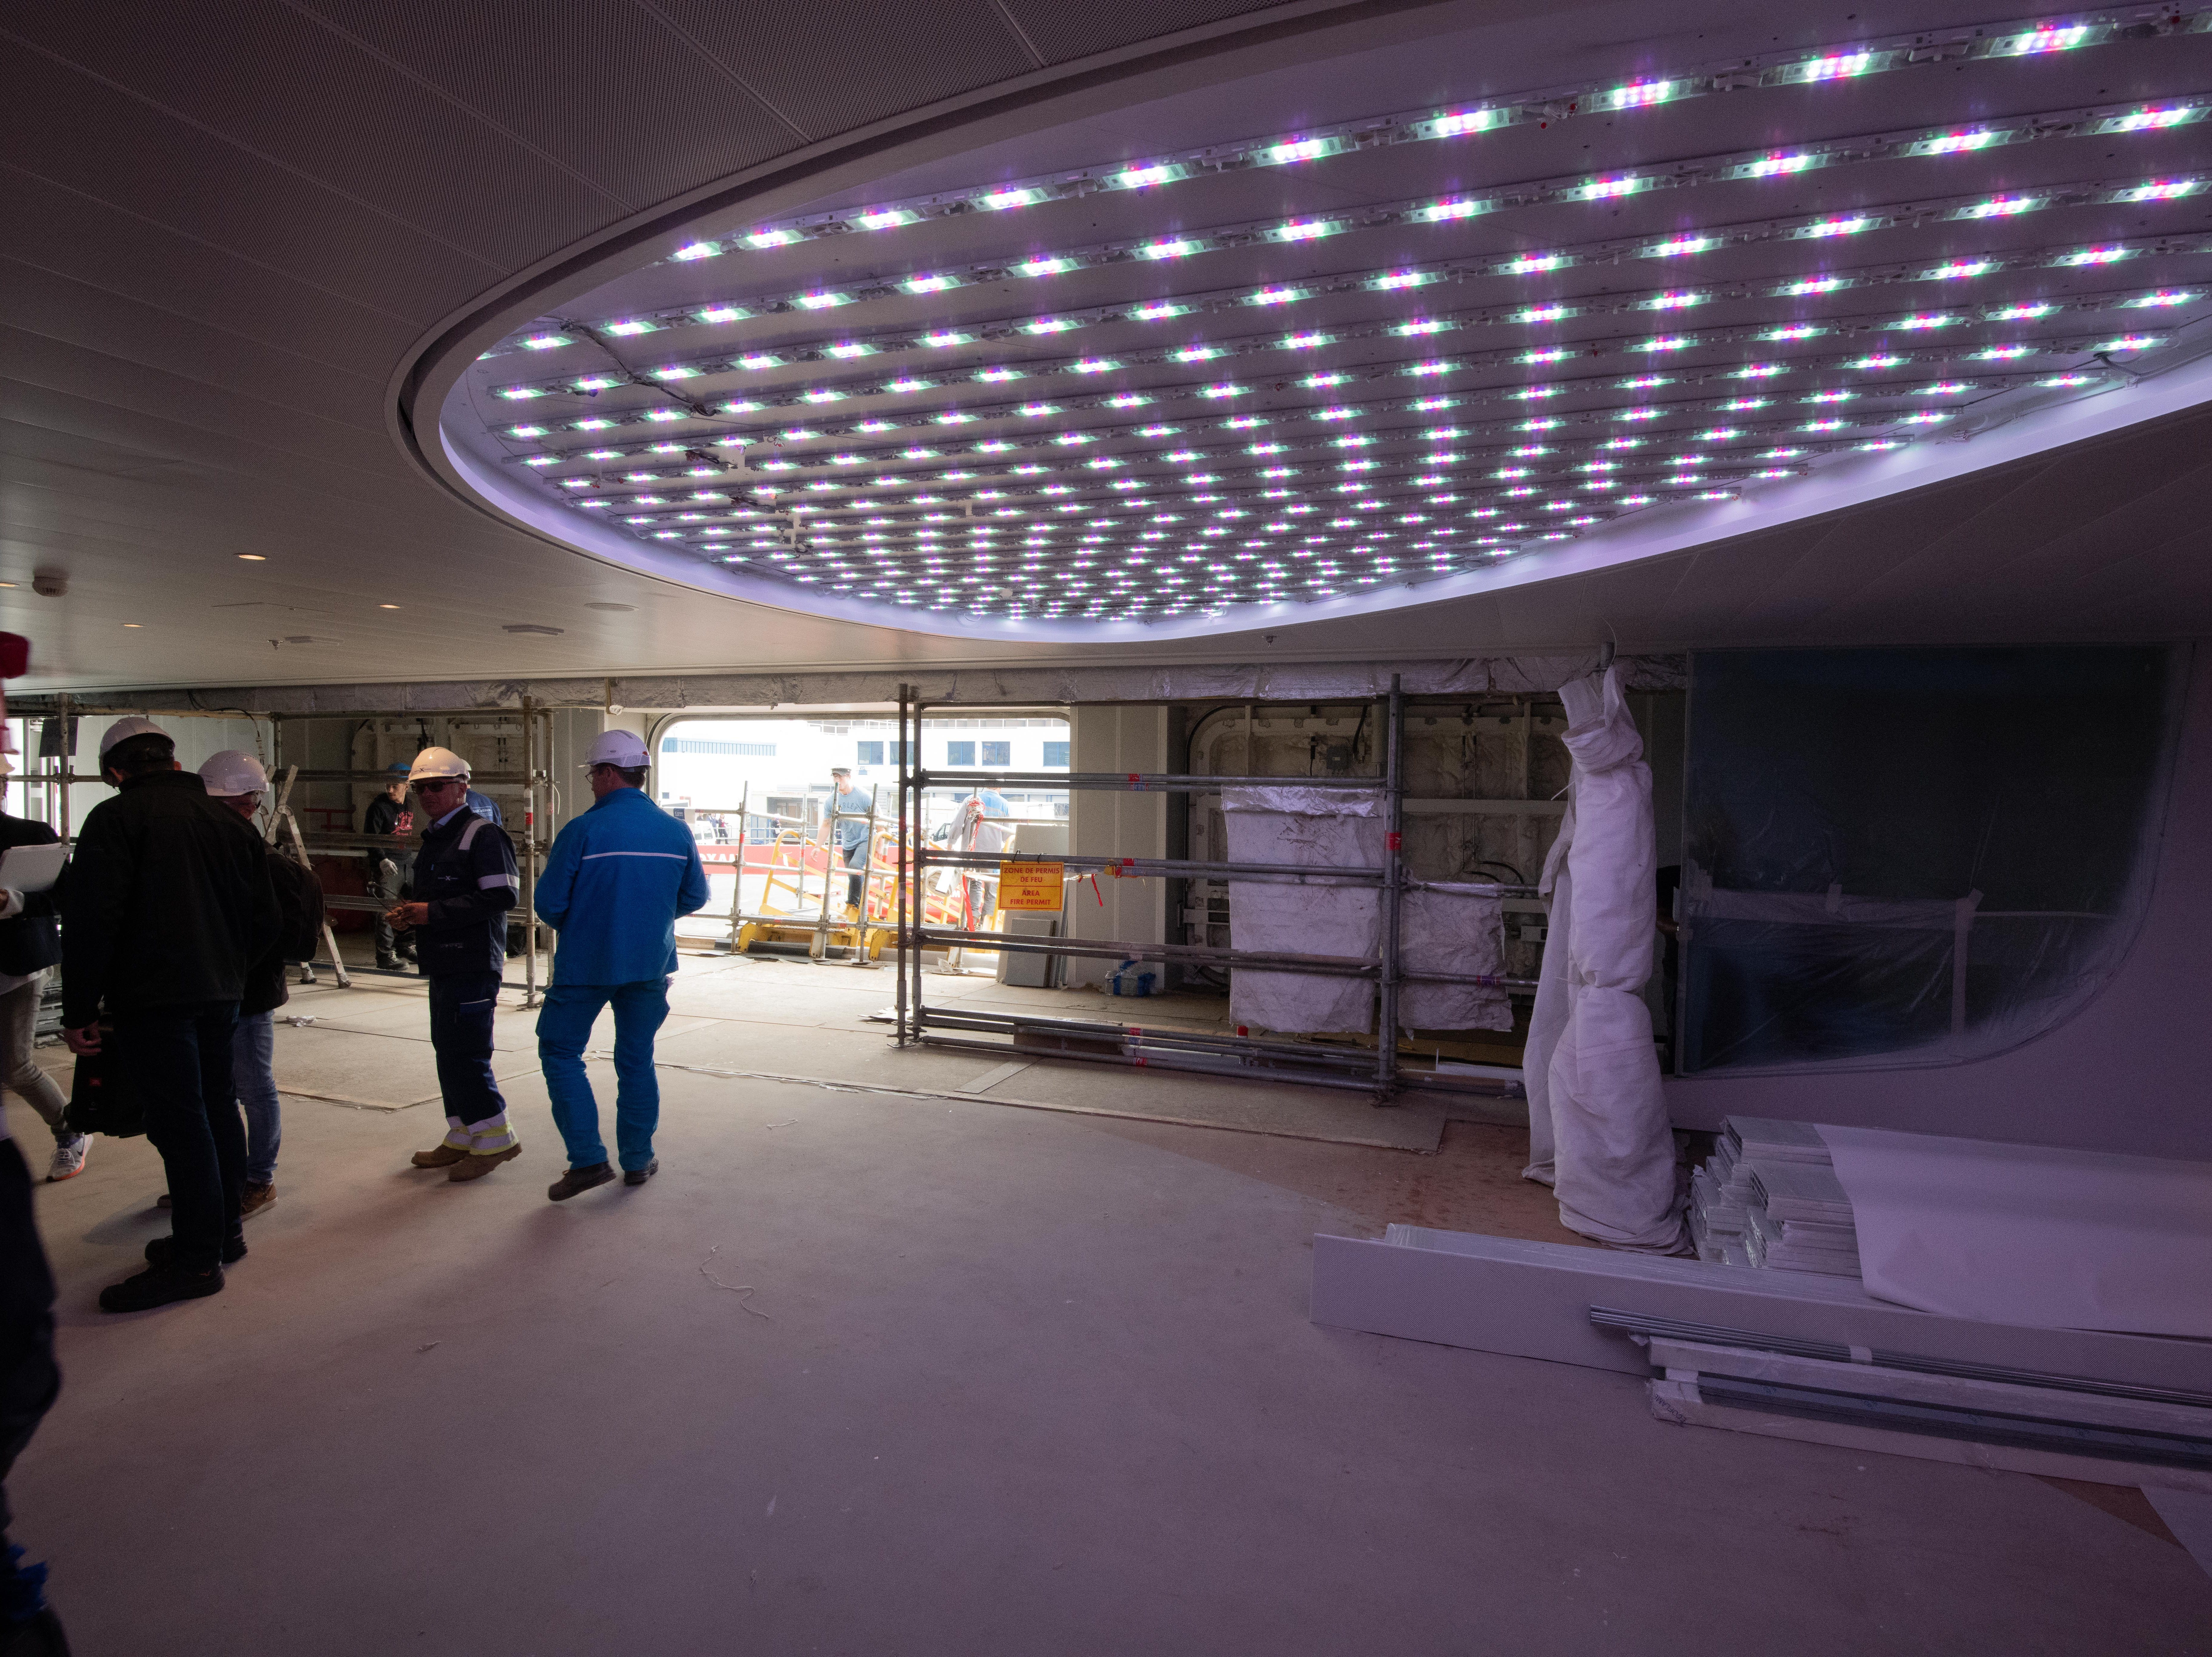 Among innovative features of Celebrity Edge is a spacious entryway called Destination Gateway.